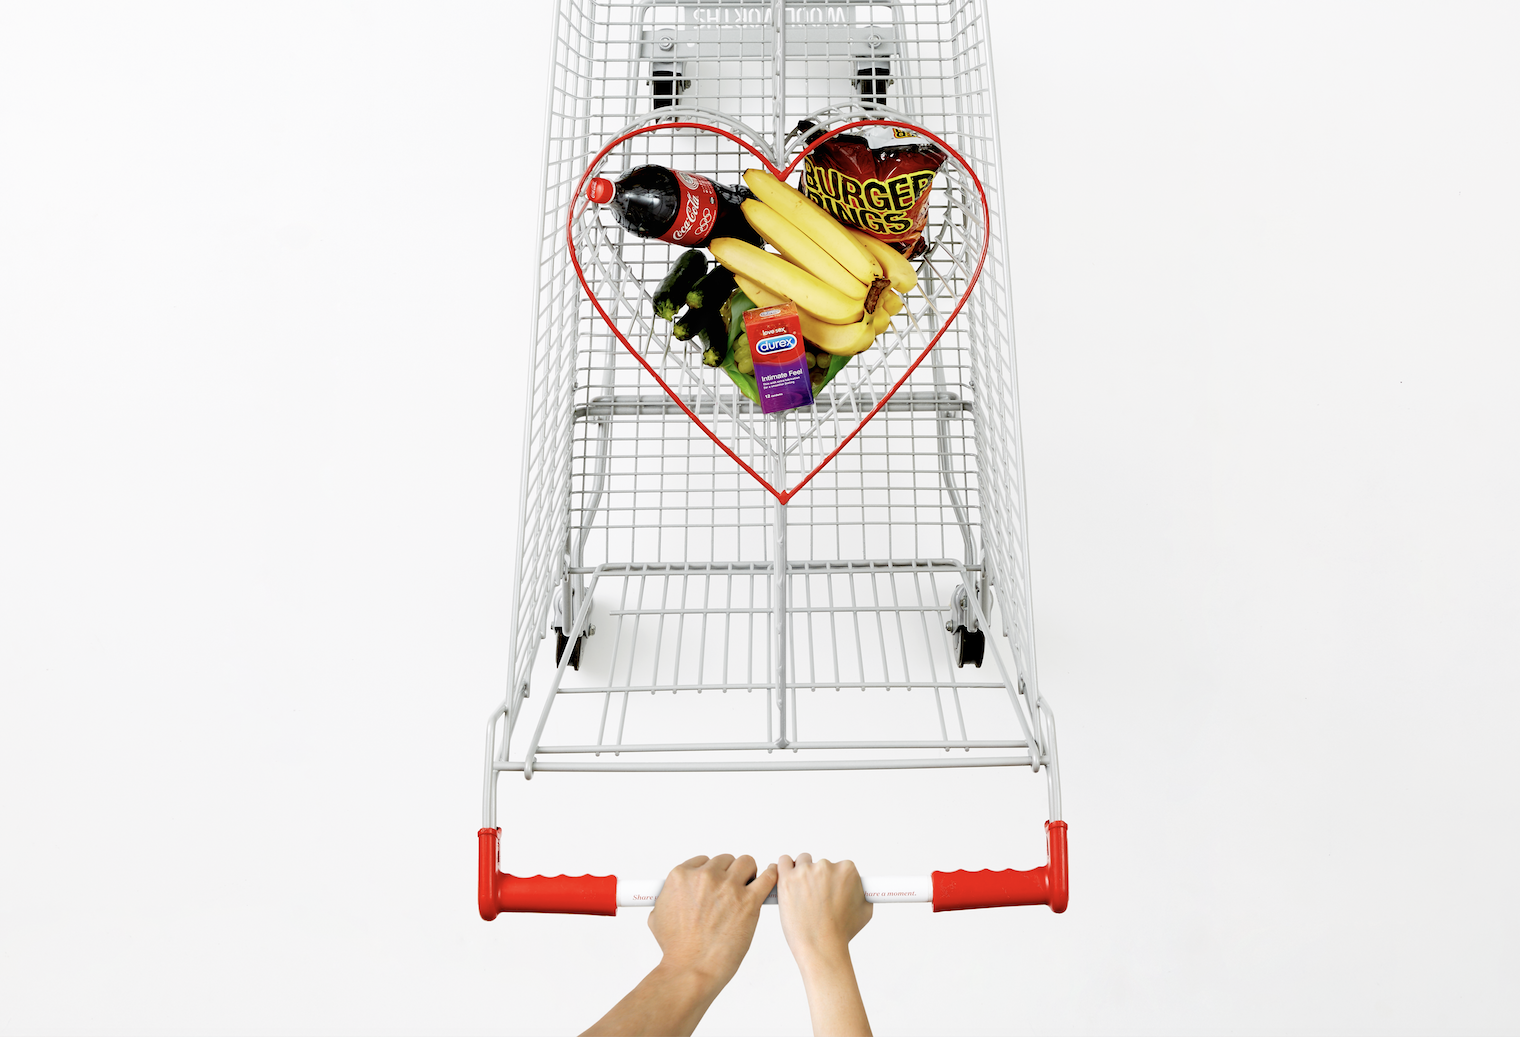 The Love Trolley